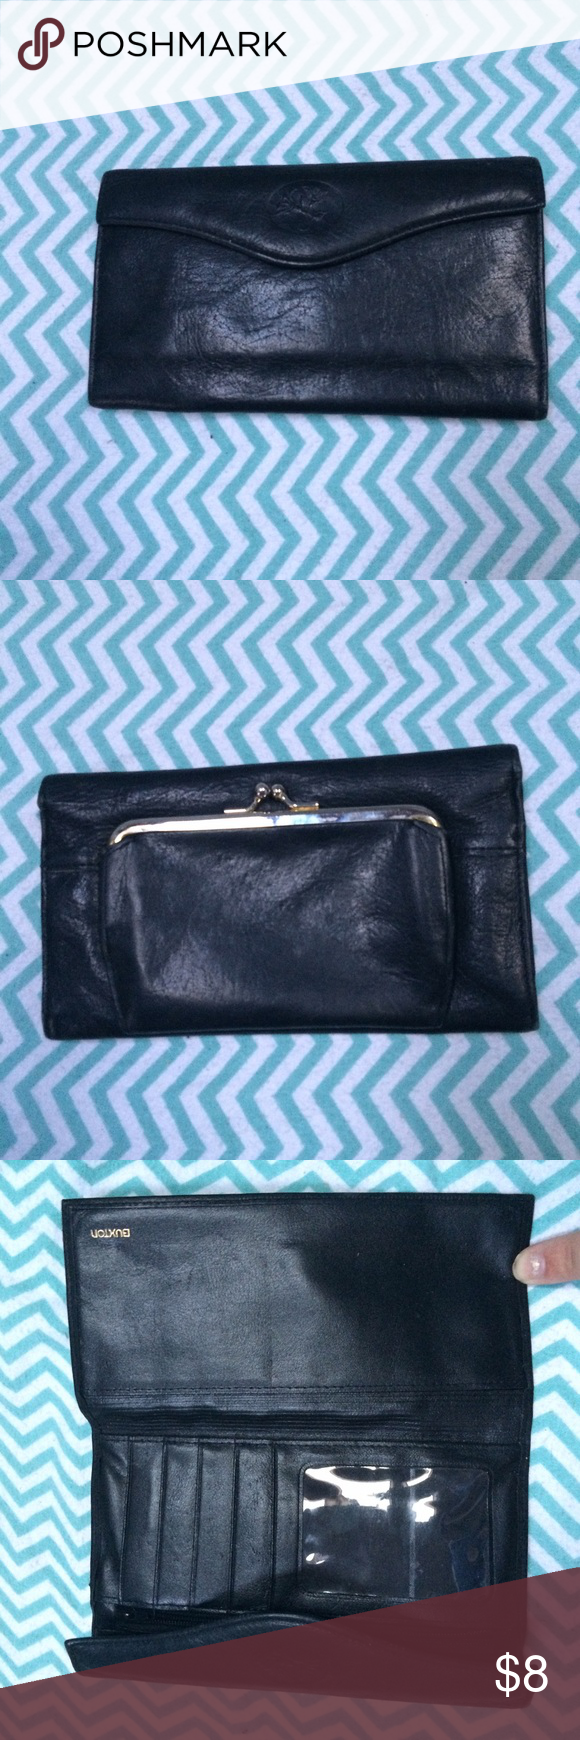 Buxton leather wallet Black genuine leather Buxton wallet in gently used condition. Lots of pockets and middle coin holder with metal closure. buxton Bags Wallets